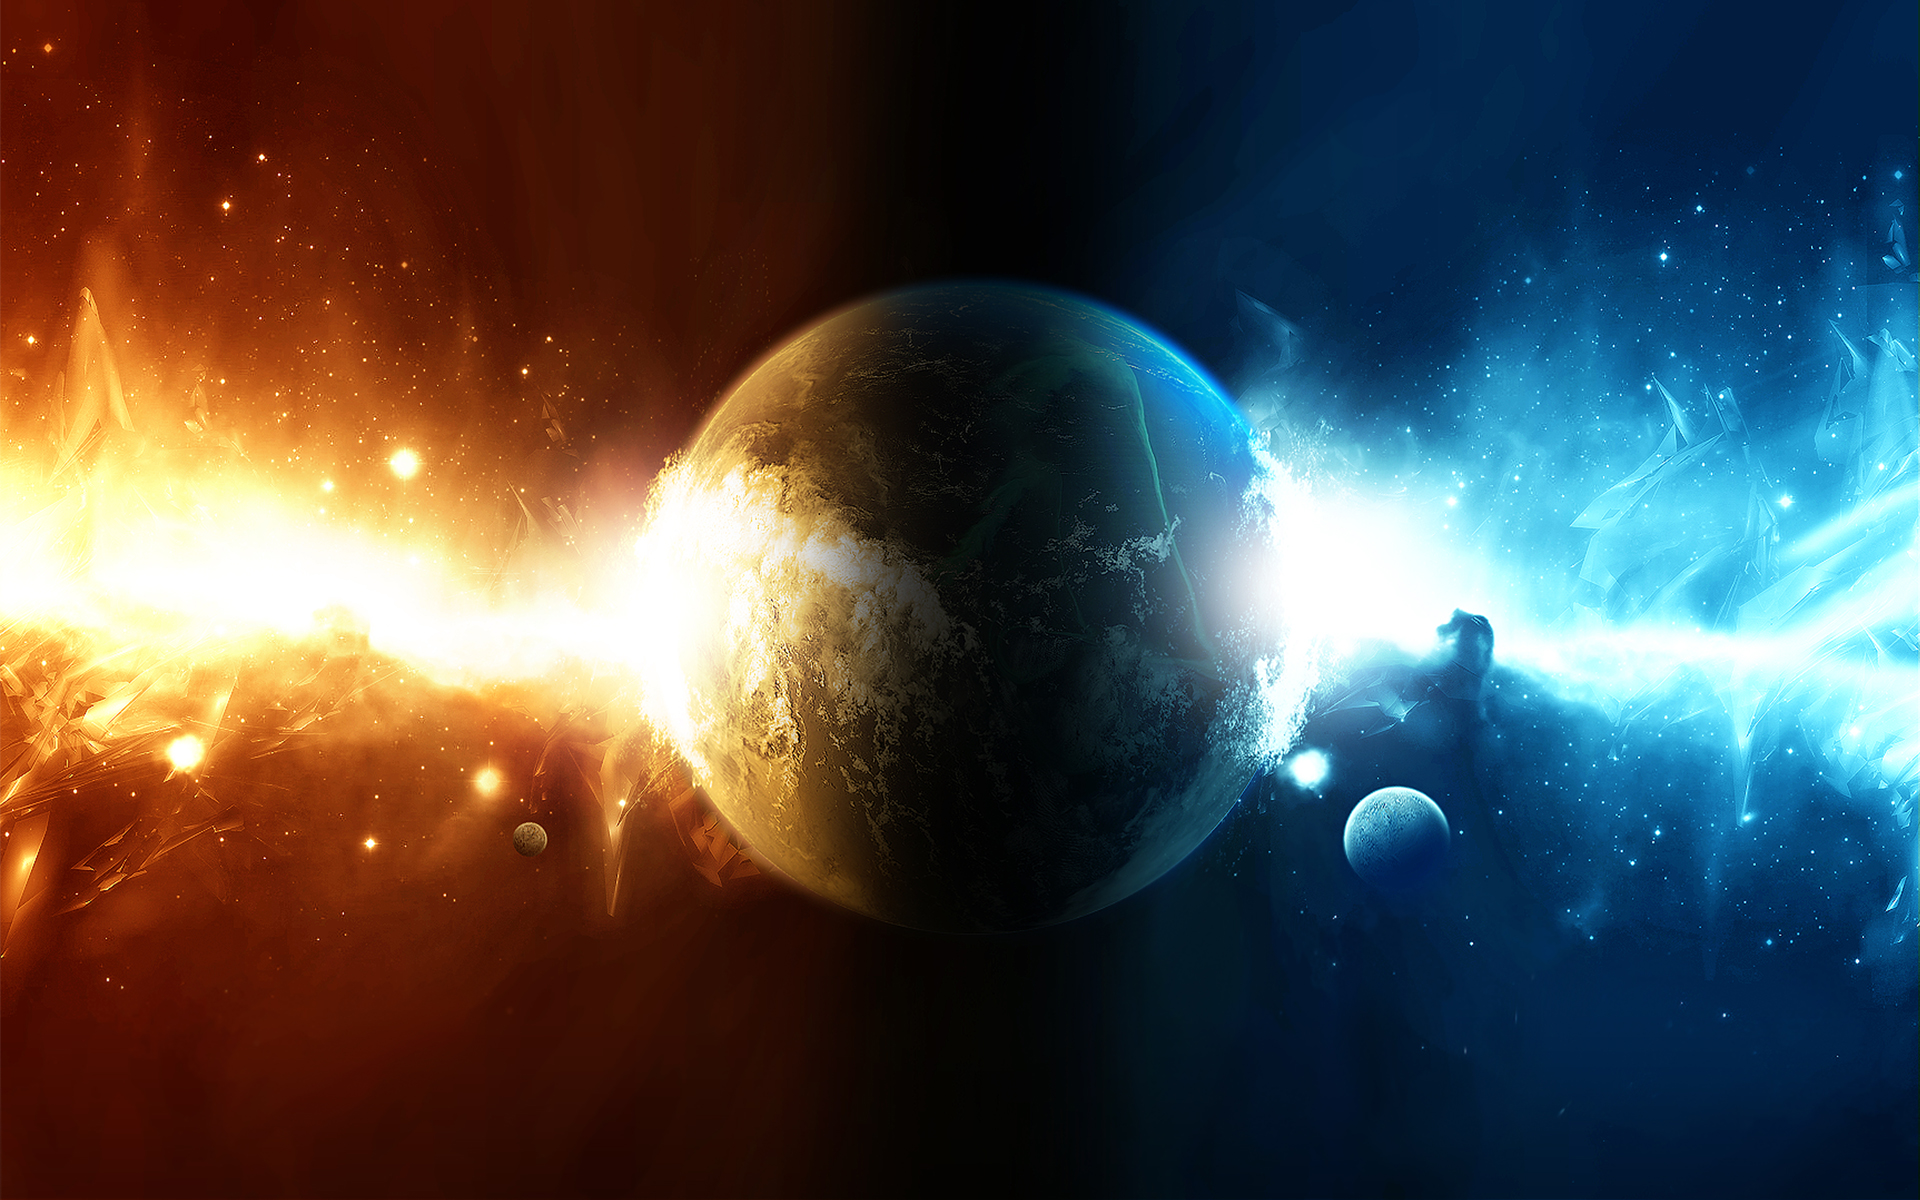 hd space wallpapers 4310